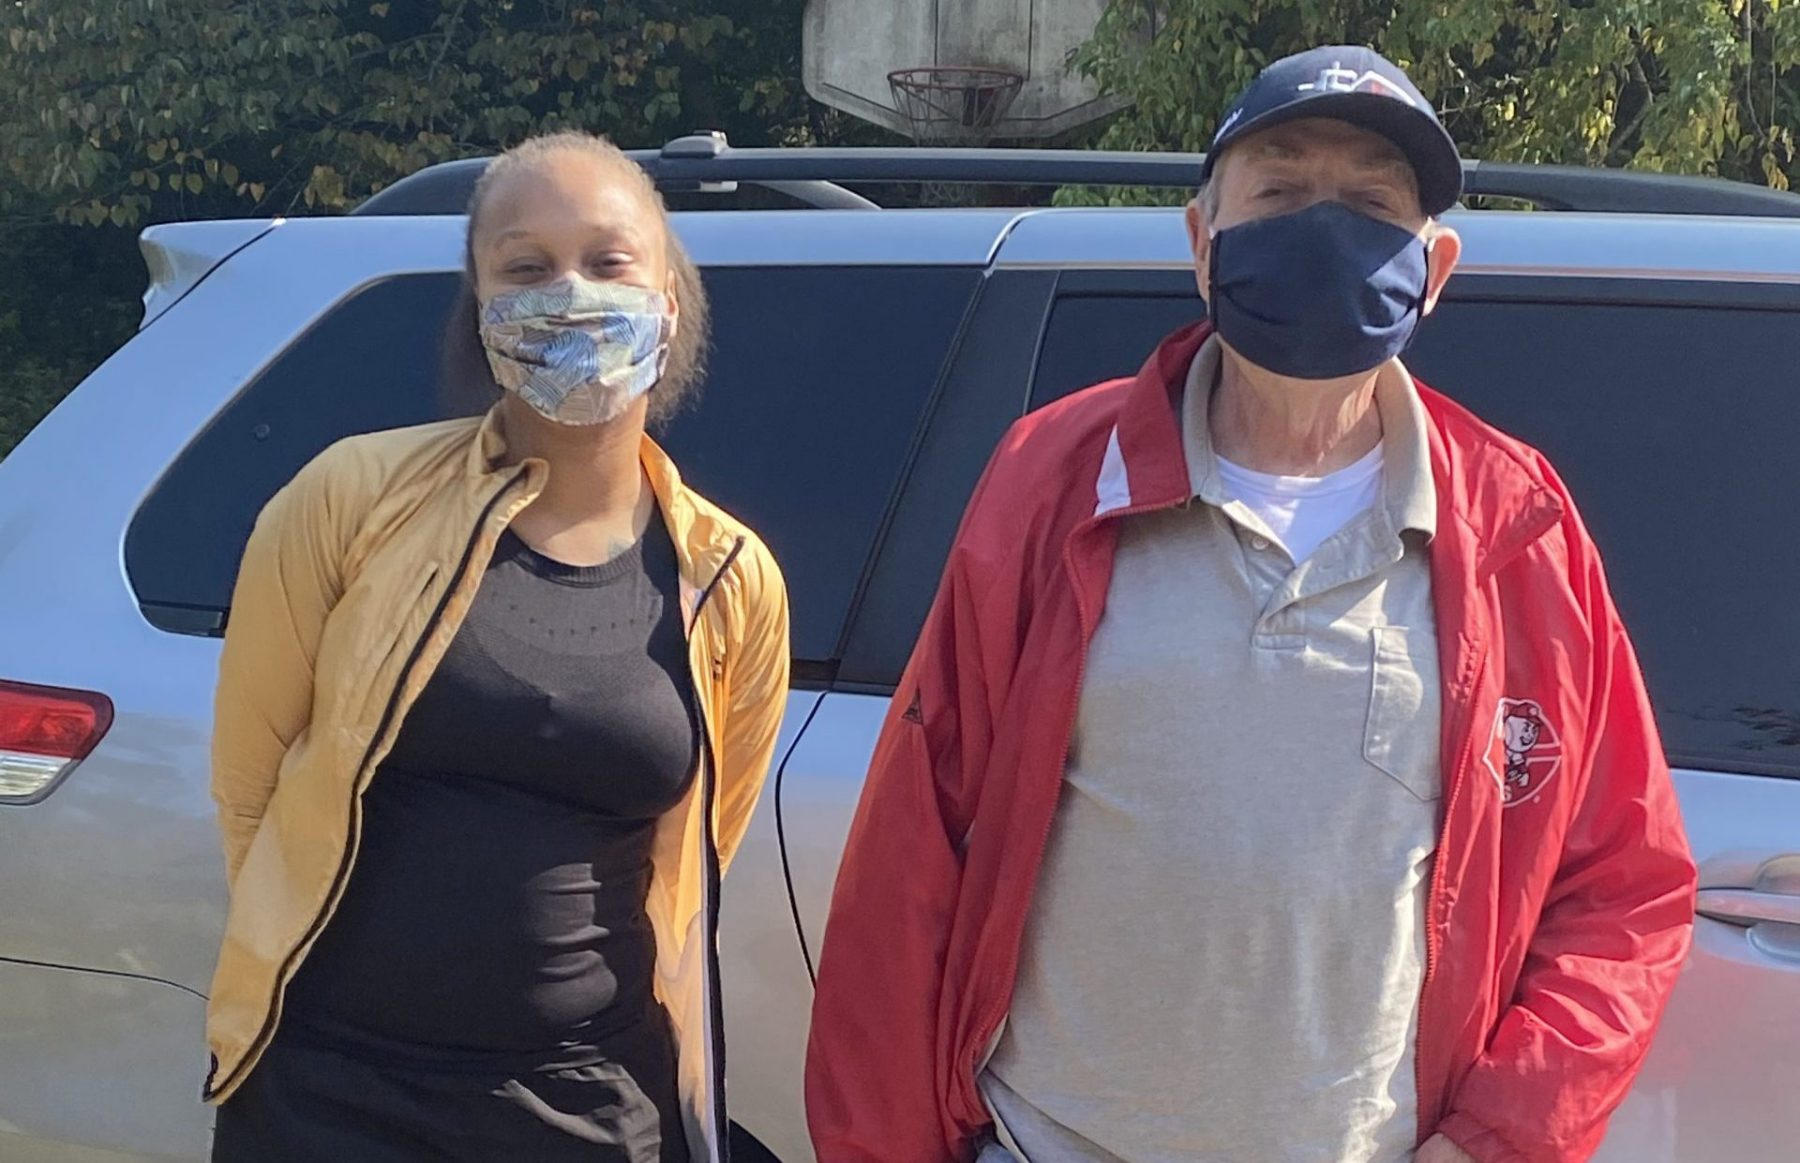 a man and woman wearing masks and standing next to a car